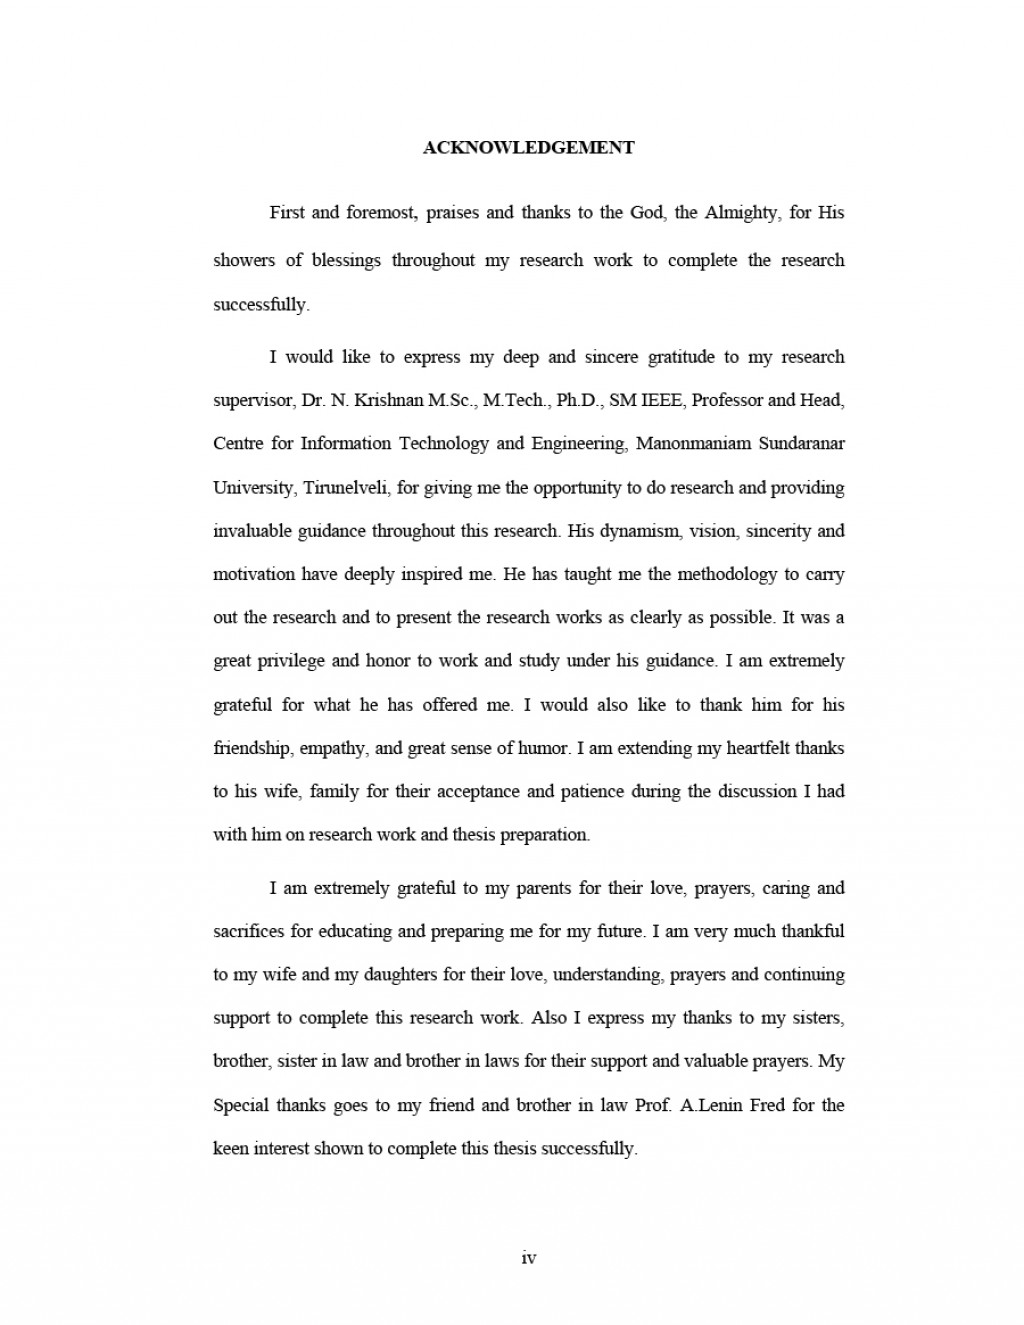 003 Research Paper Acknowledgement Sample Example Of In Top Group Pdf Large